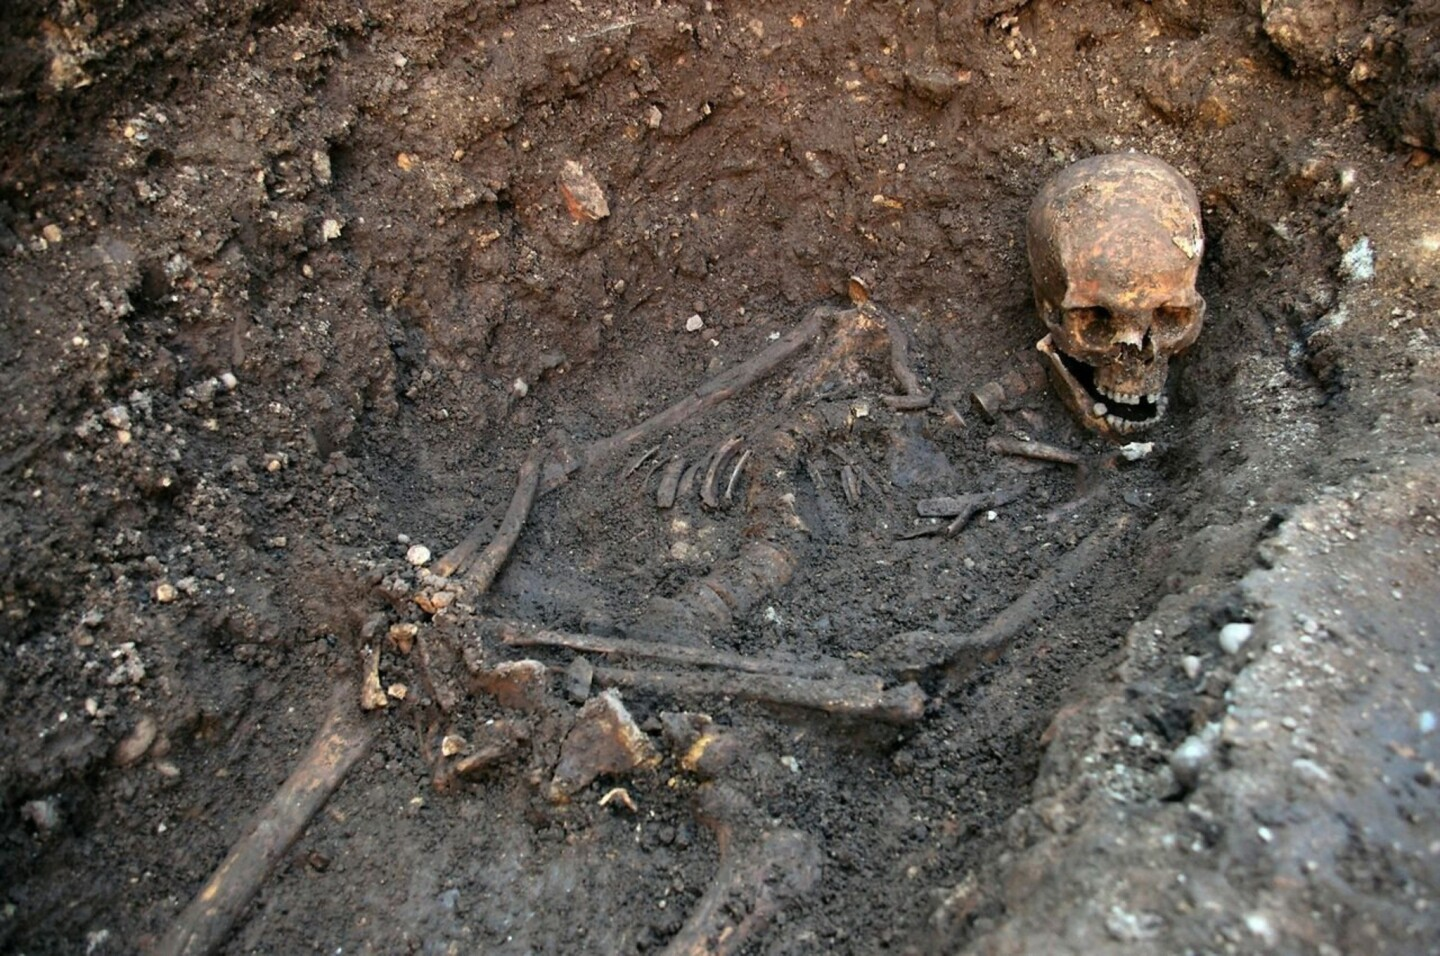 A photo released by the University of Leicester shows the skeletal remains of English King Richard III, who was killed at the Battle of Bosworth Field in 1485.